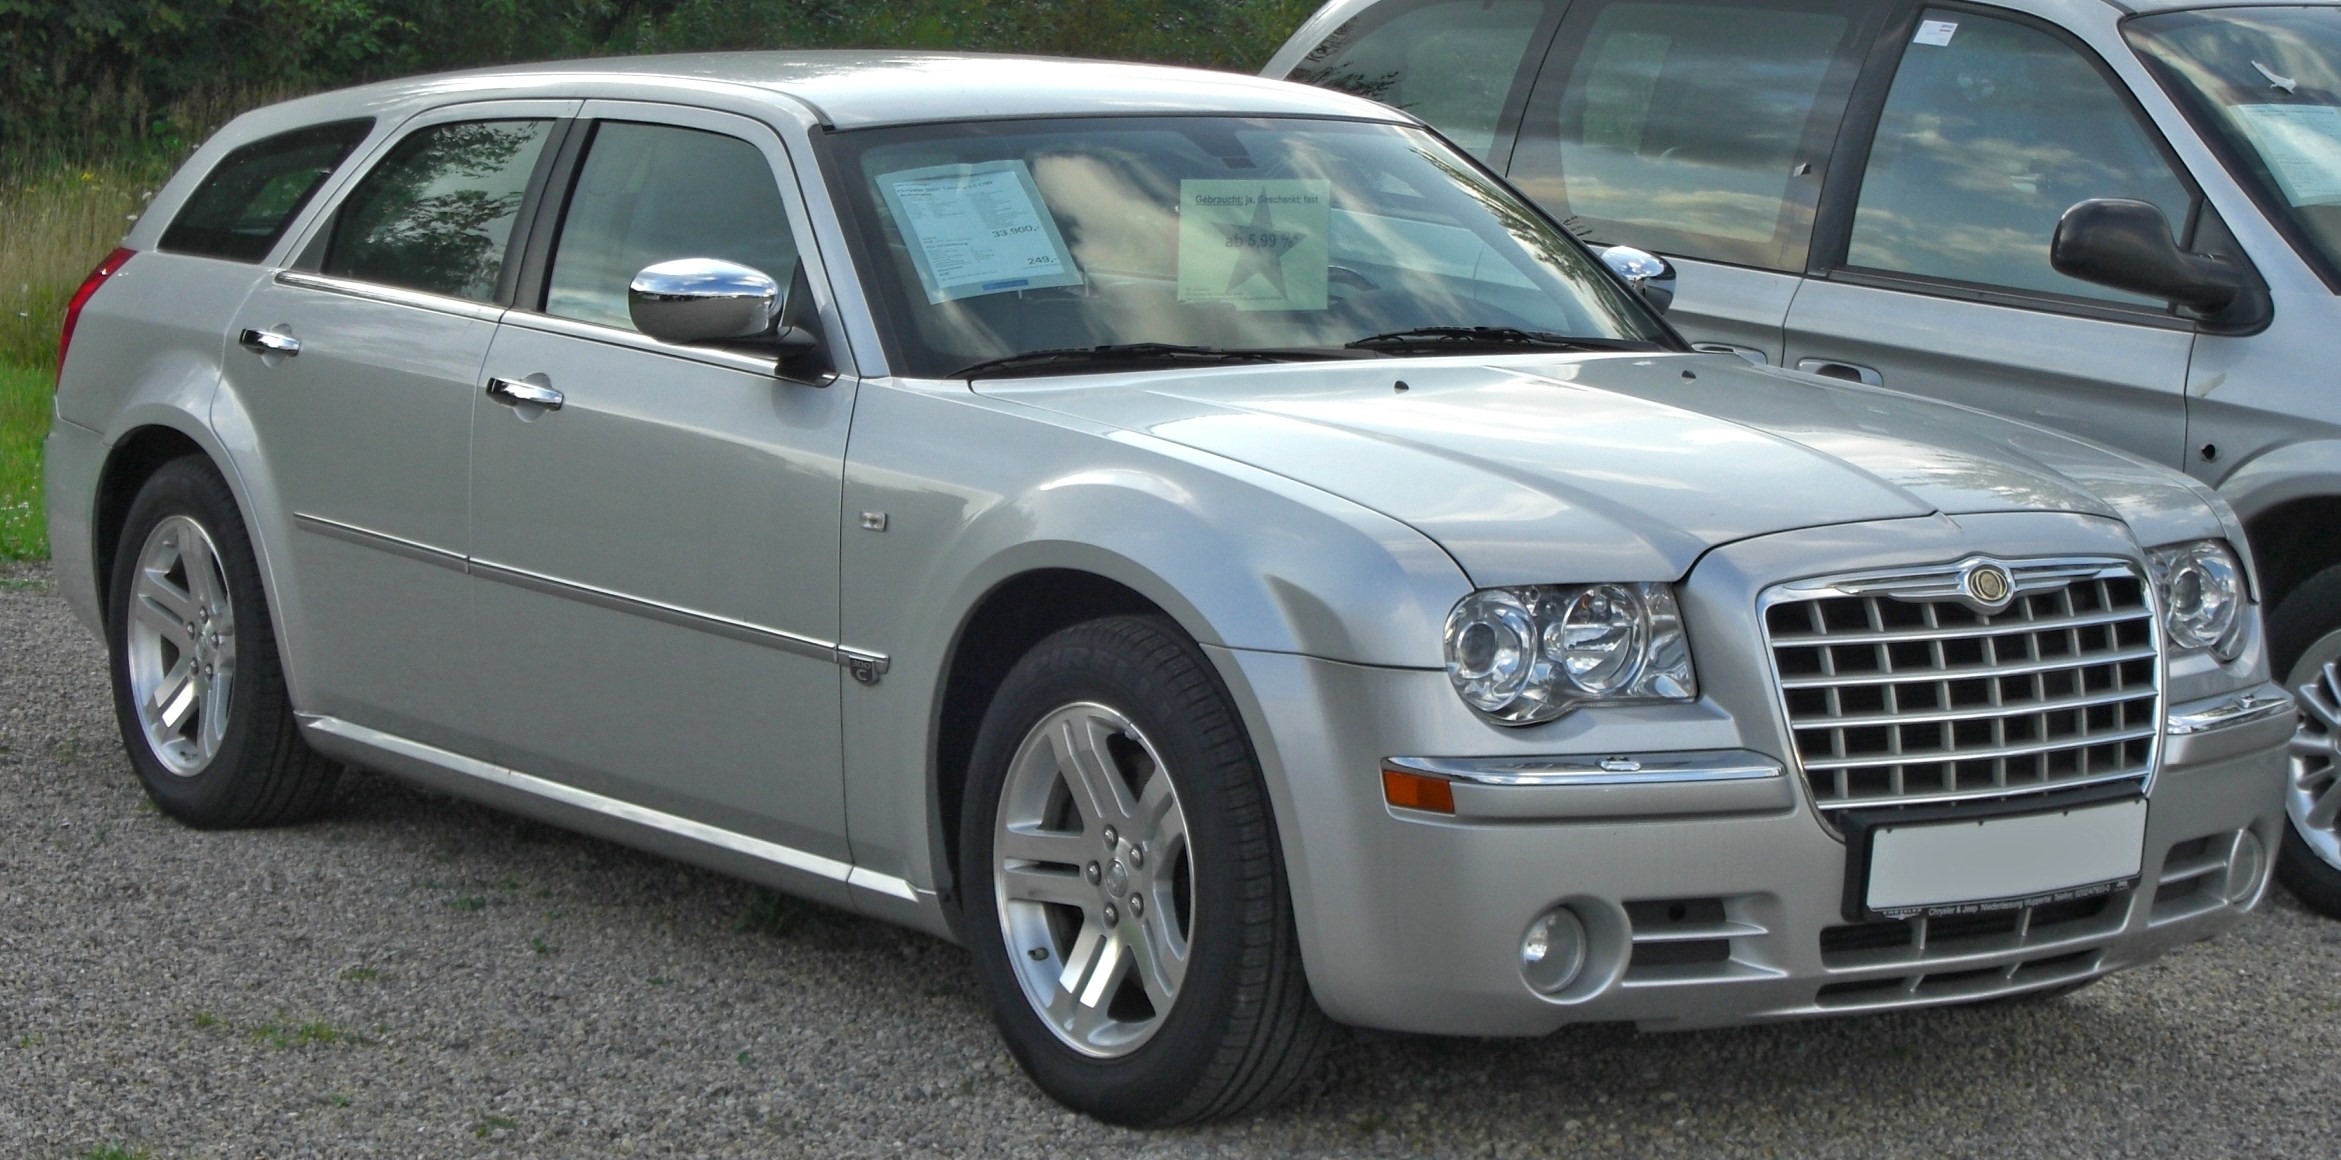 file chrysler 300c touring 3 0 crd front jpg wikimedia. Black Bedroom Furniture Sets. Home Design Ideas